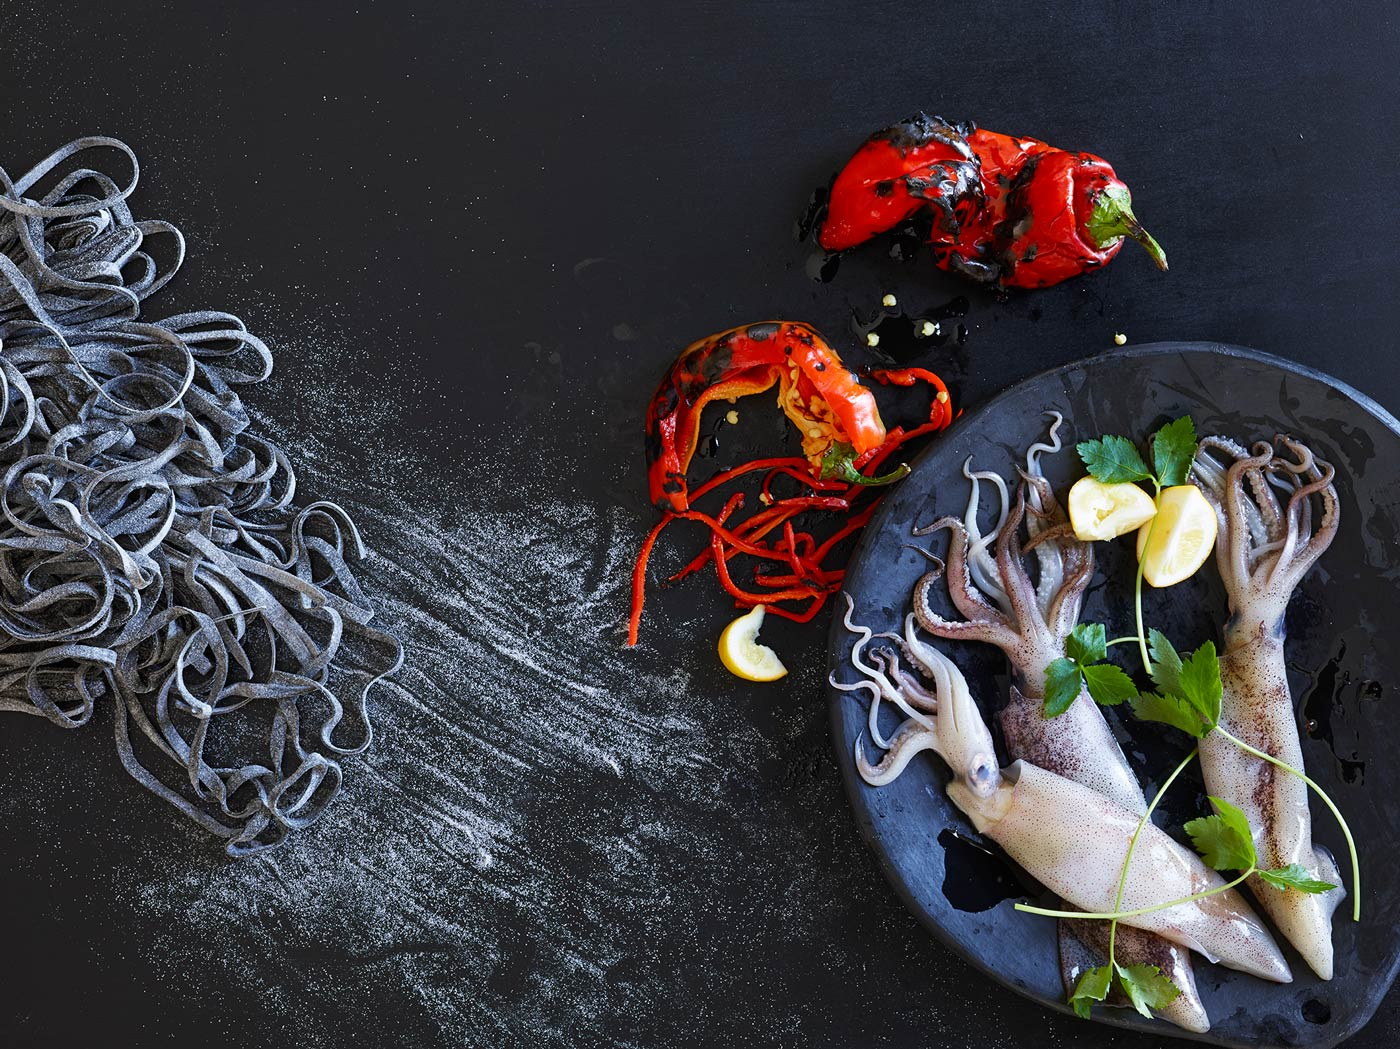 abreakey-raw-foodphotography-squid-still-life